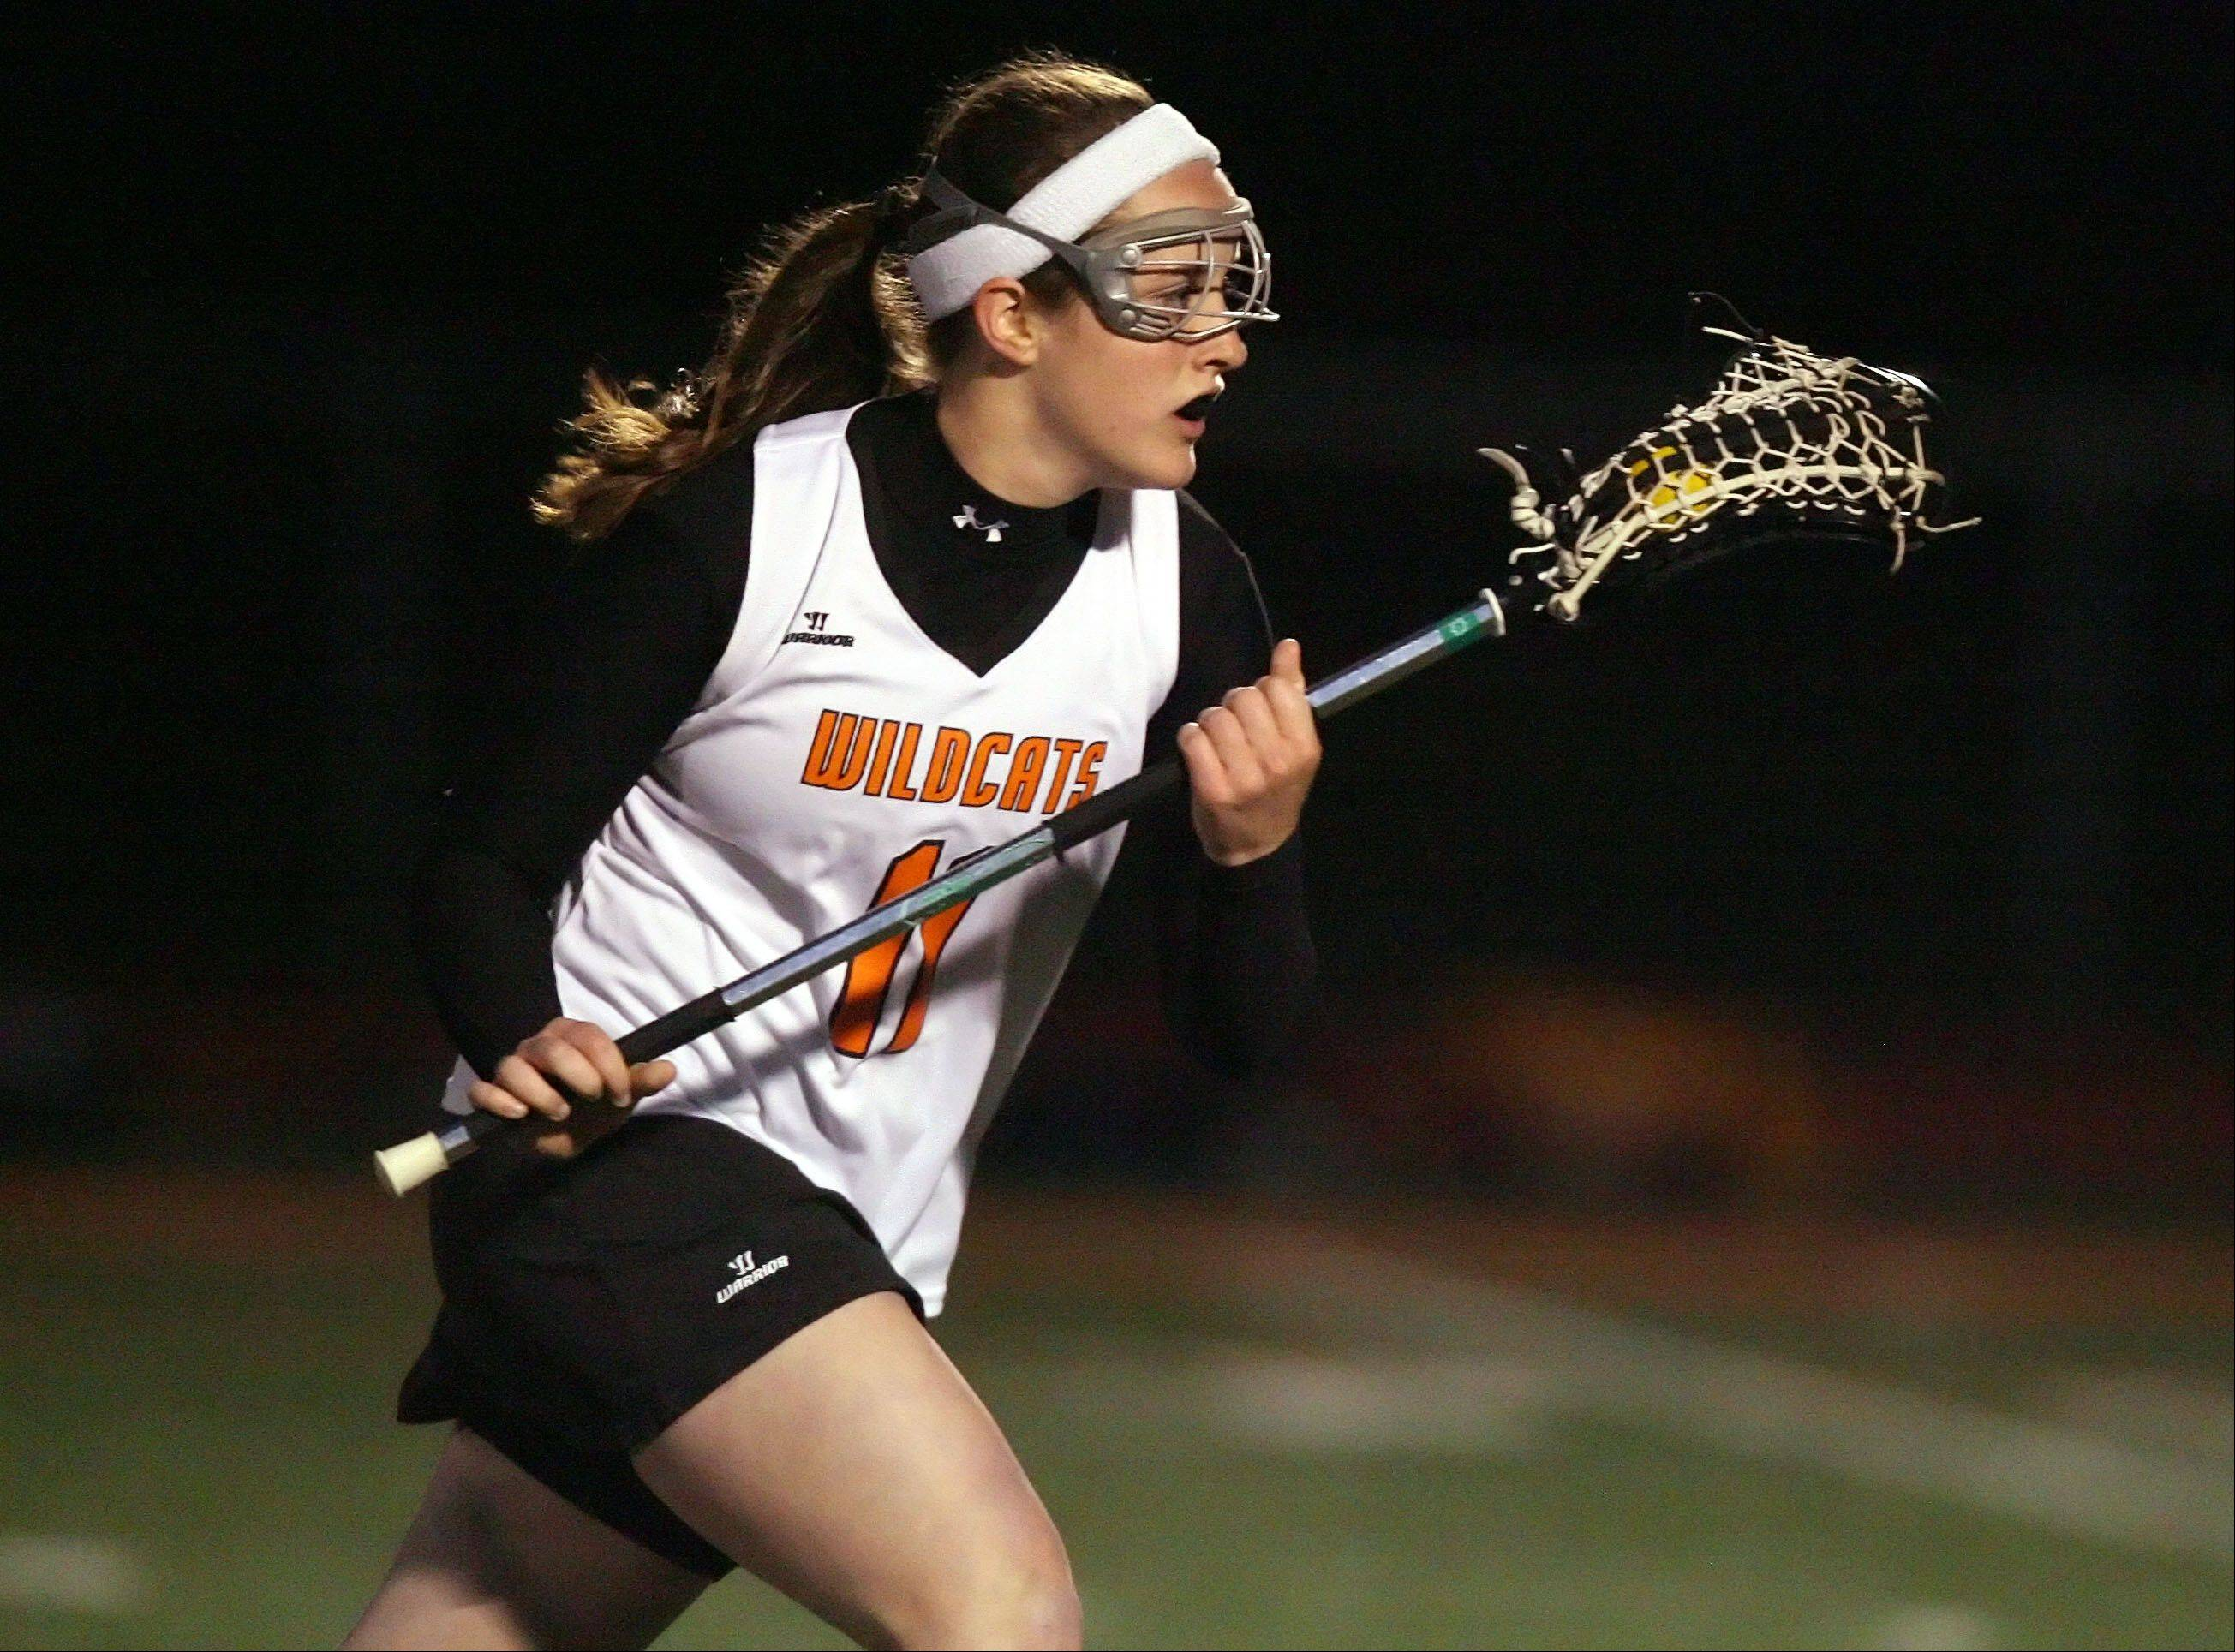 Libertyville's MK Lee drives with the ball.